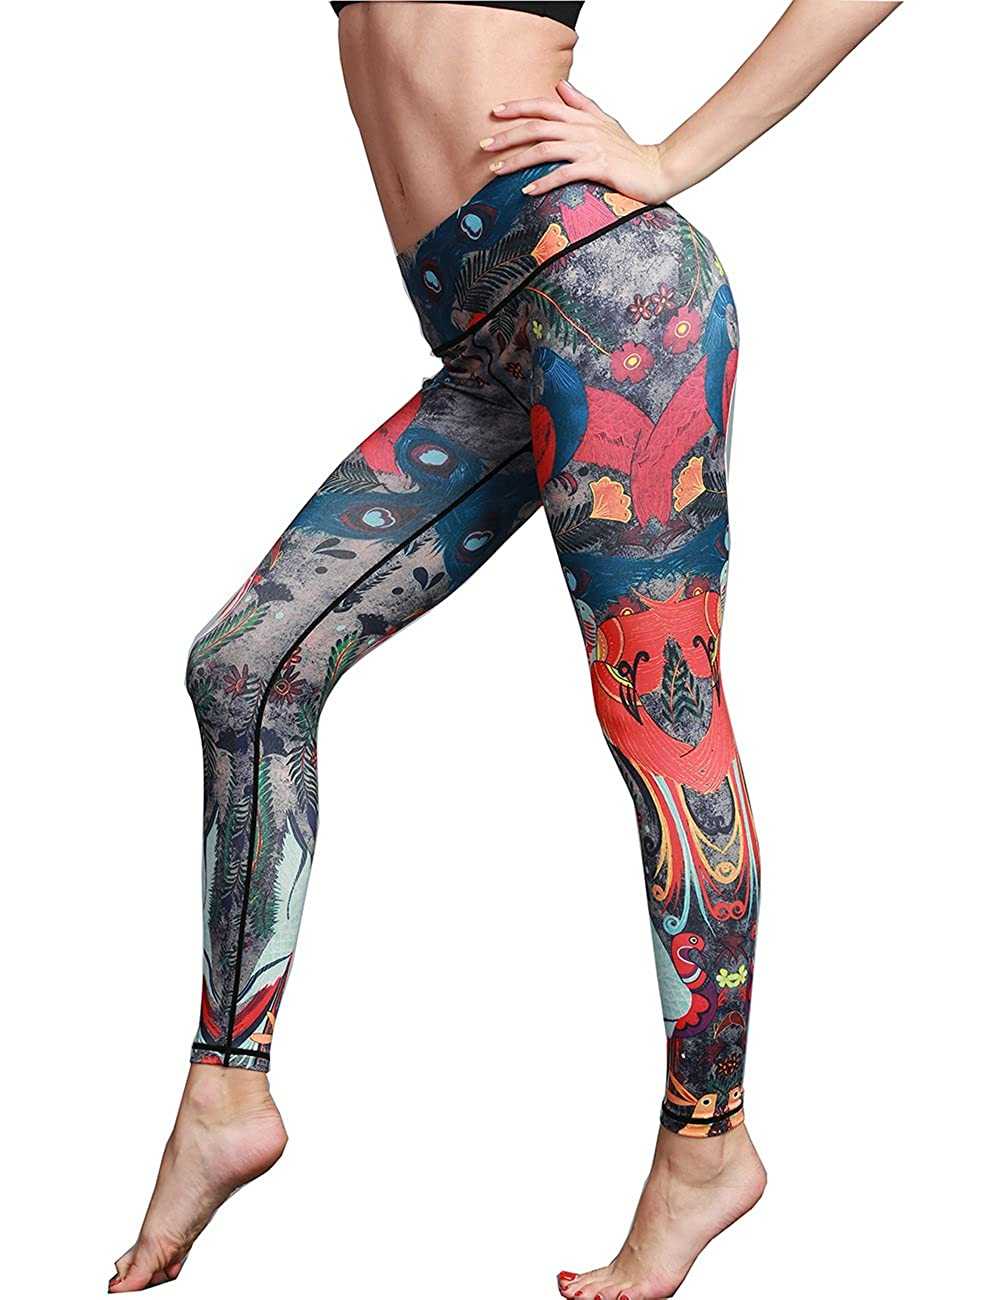 14c45bb381f063 Top1: Alsol Lamesa Yoga Leggings for Women Sport Gym High Waist Pants  Fashion Printed Pattern Workout Active Wear